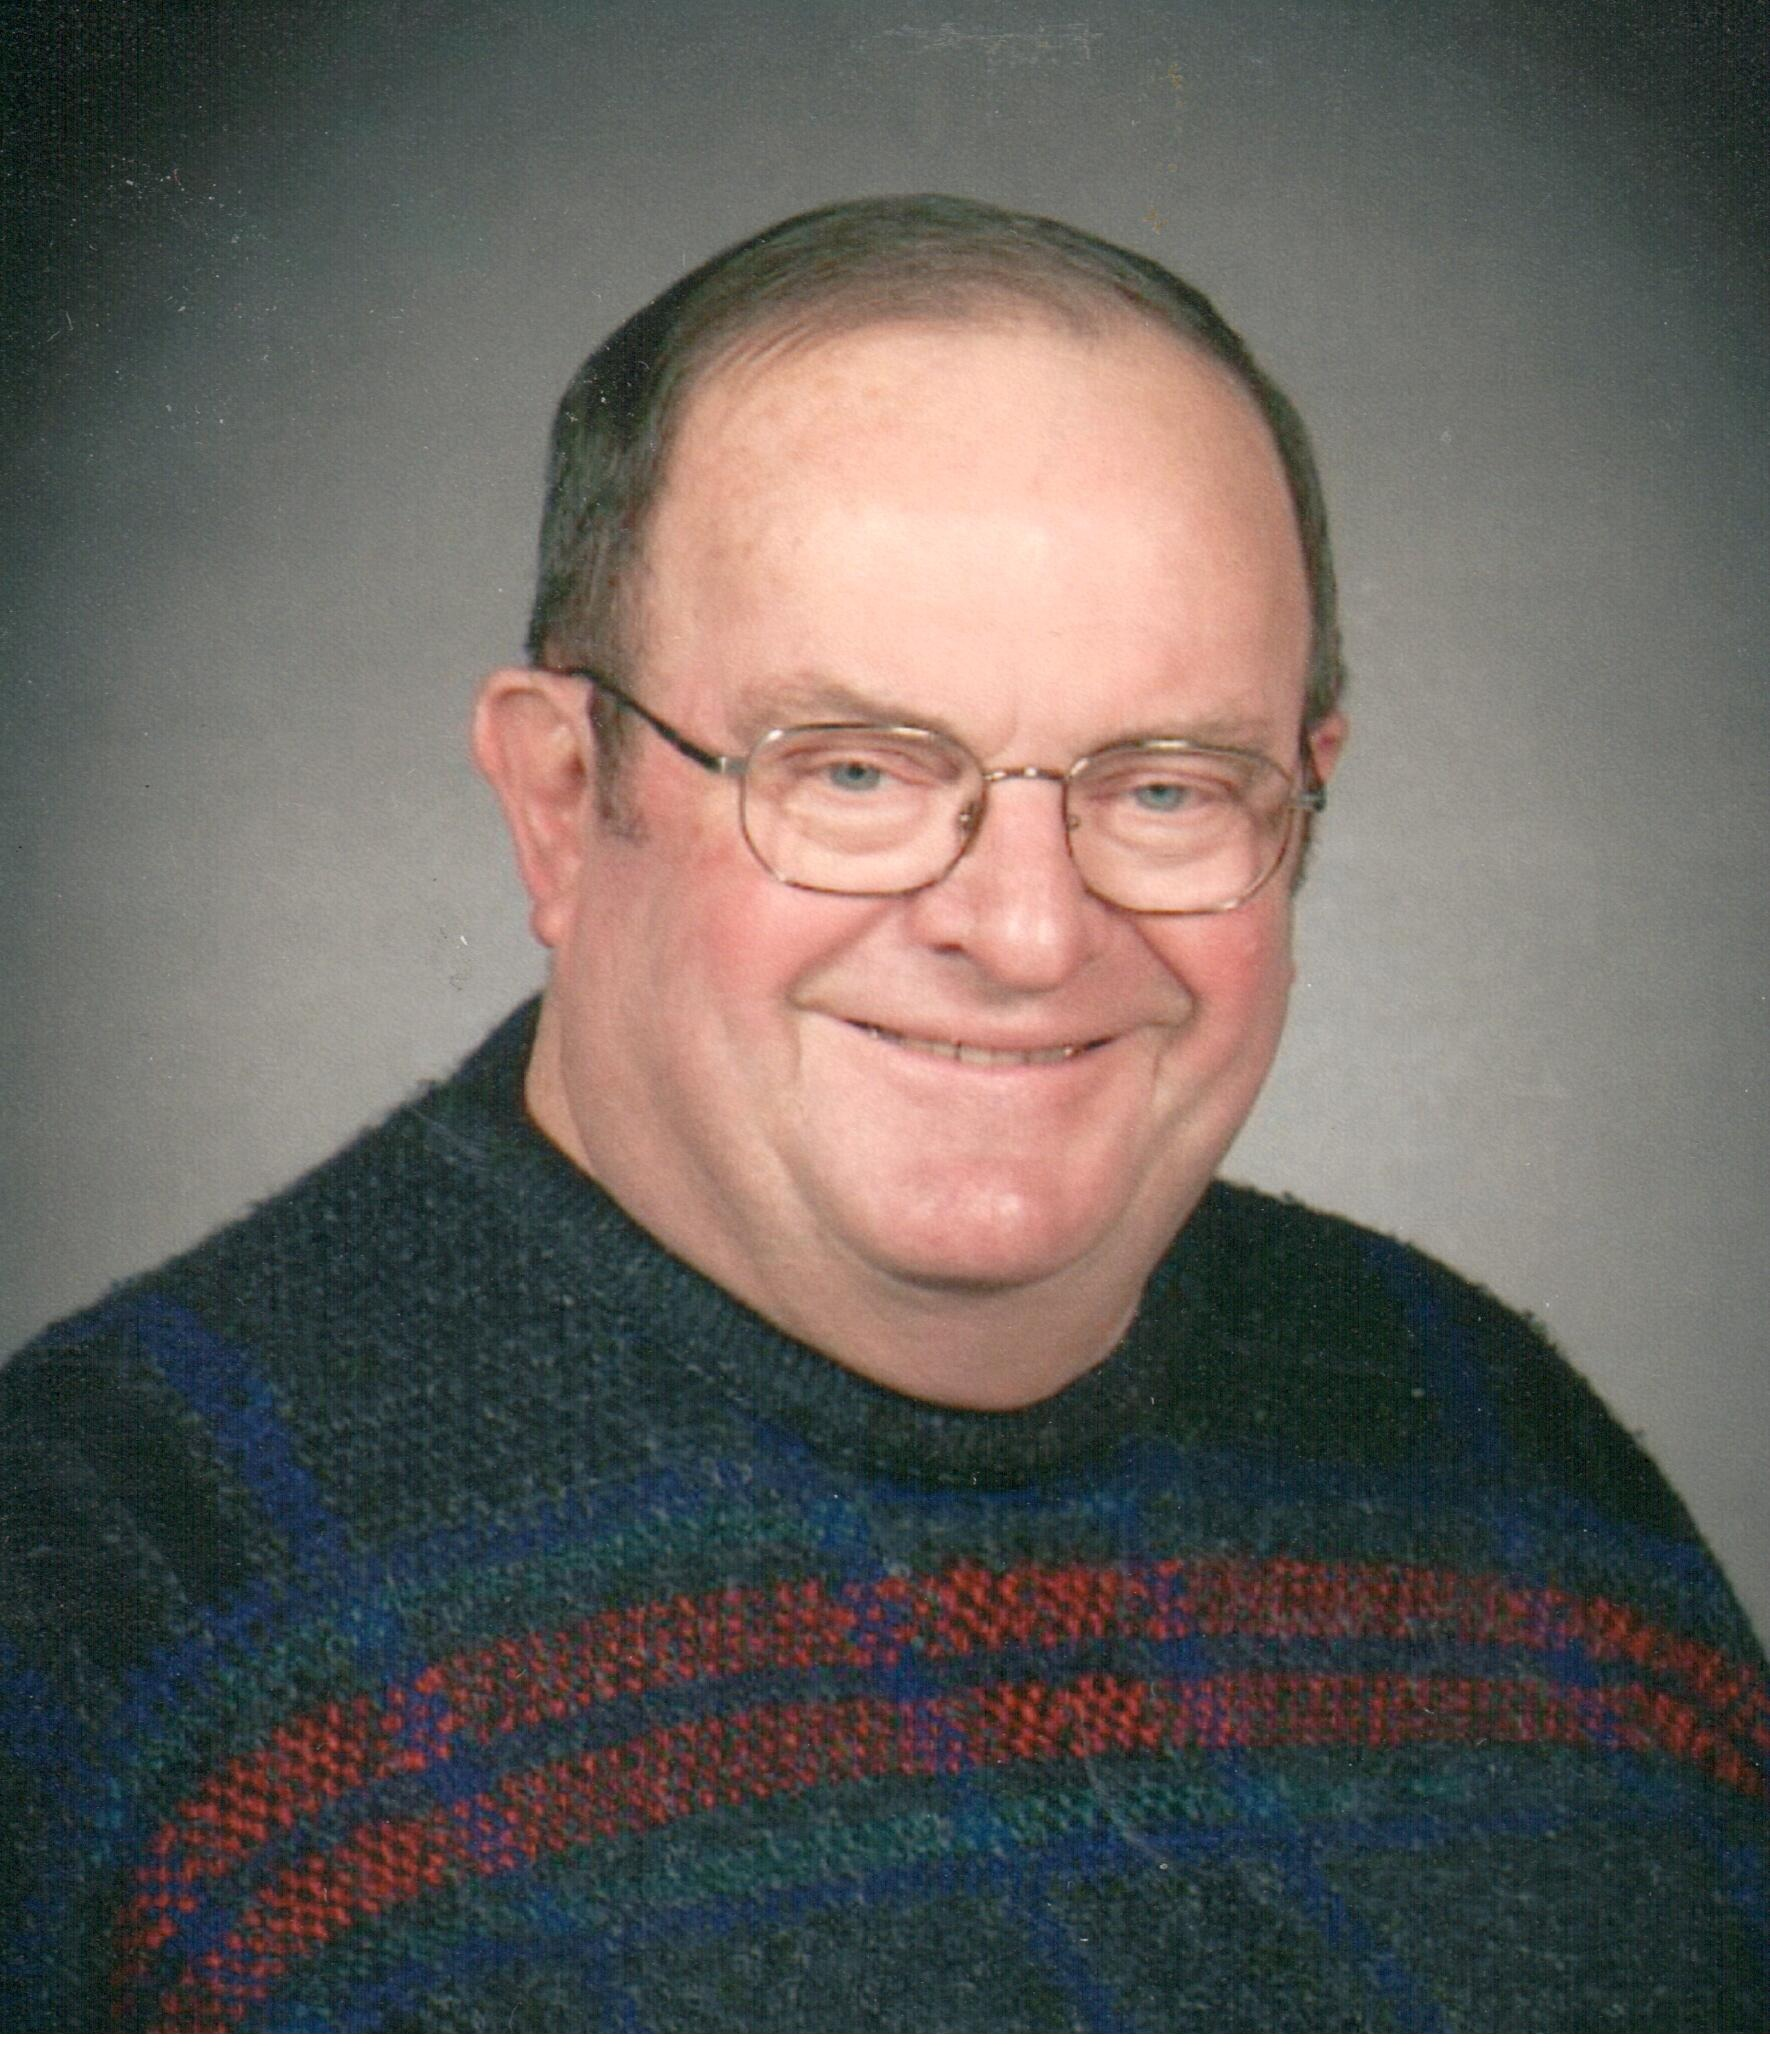 David L. Buechlein, age 78 of Jasper